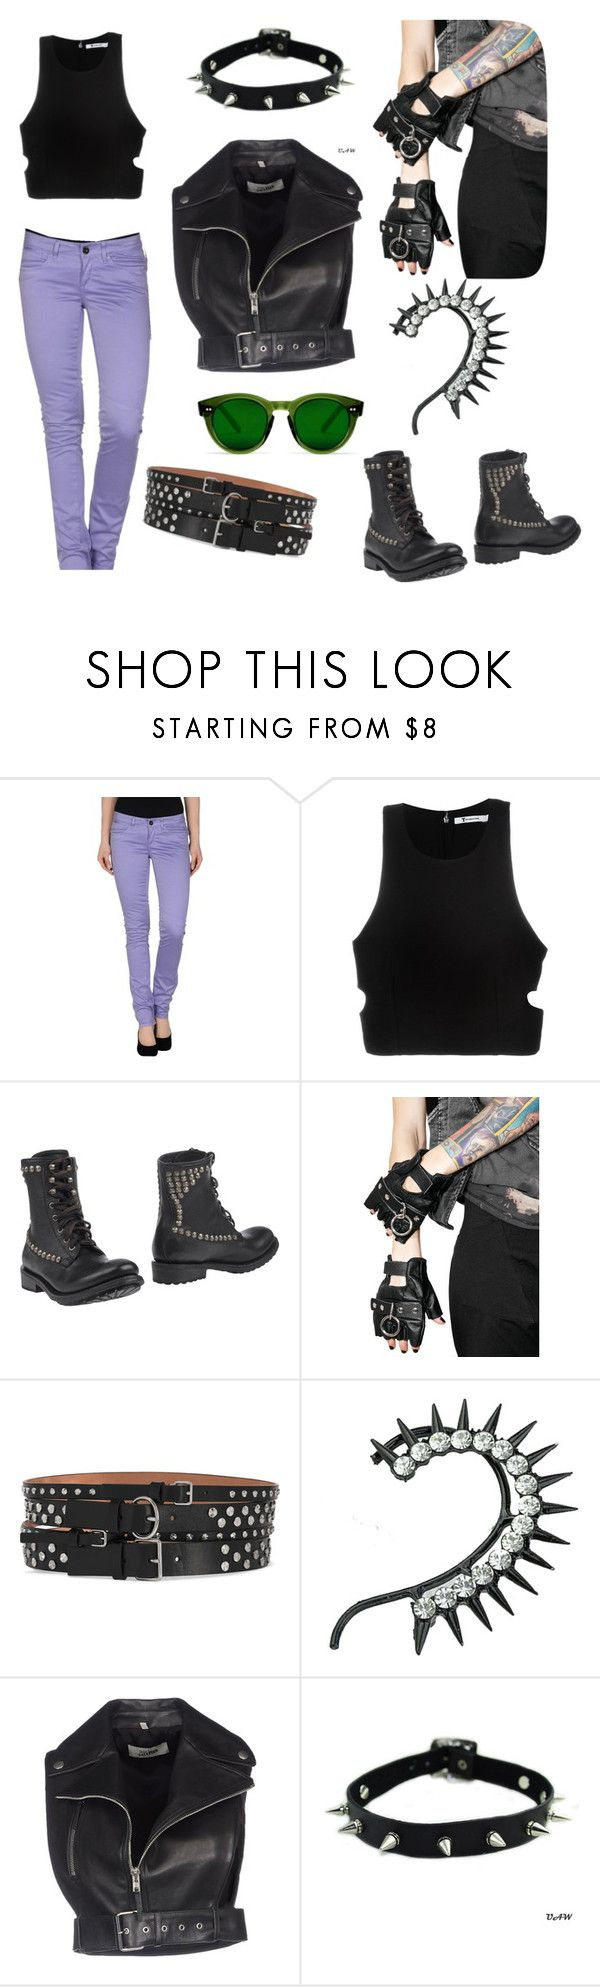 """Untitled #47"" by mariruse on Polyvore featuring Camouflage AR and J., T By Alexander Wang, Ash, Club Exx, Alexander McQueen and Jean-Paul Gaultier"